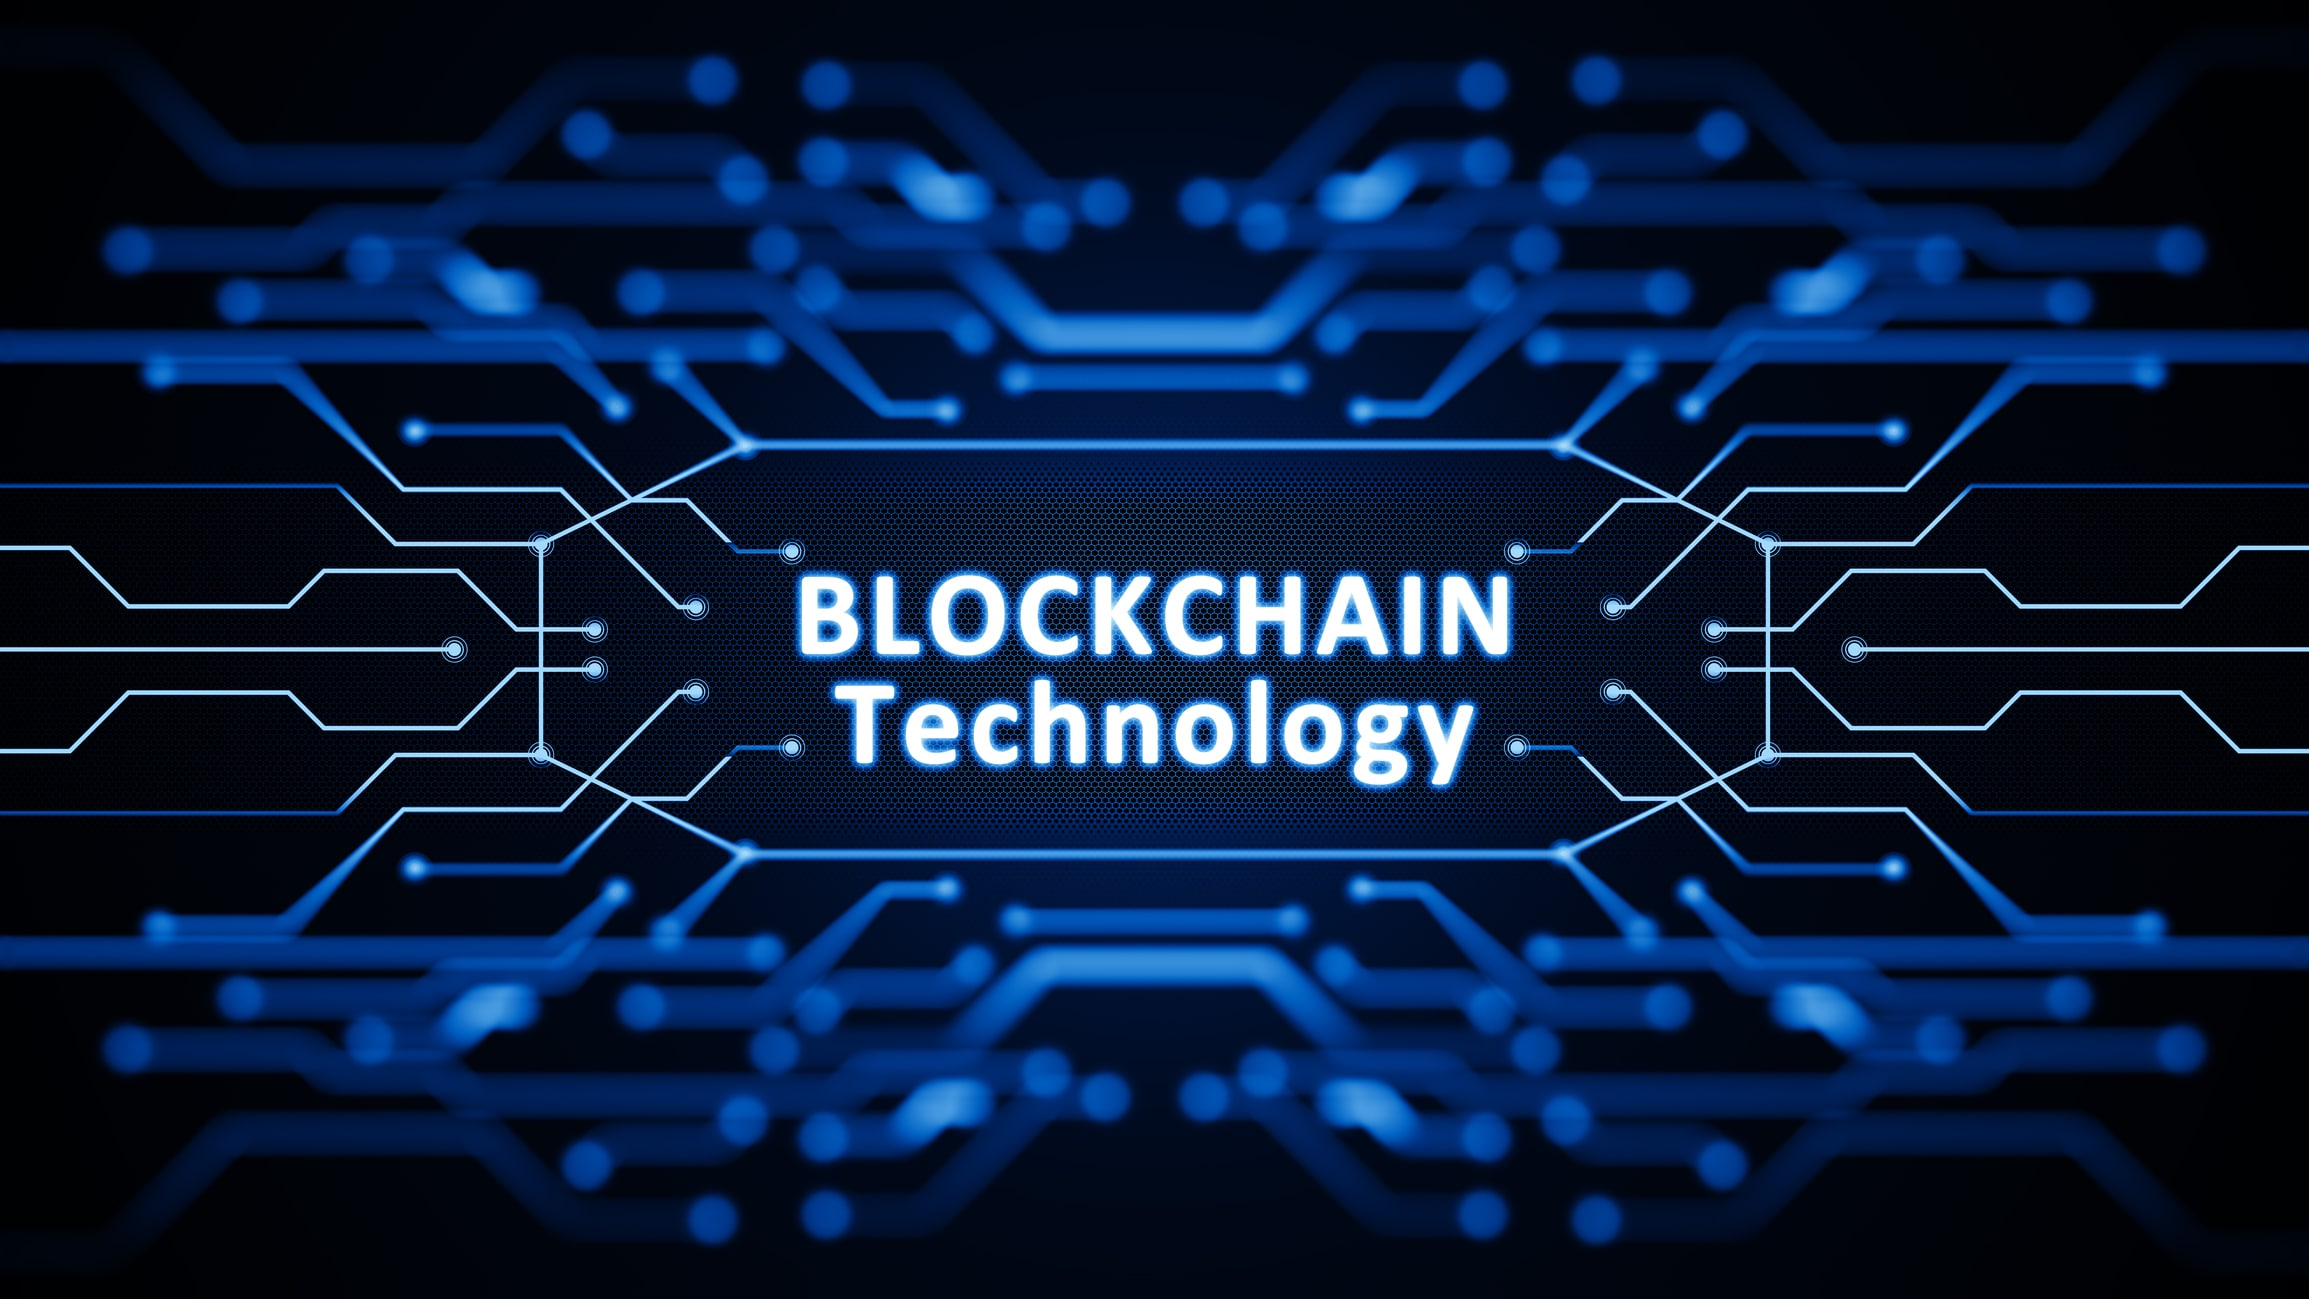 4 Sectors The Blockchain Is About To Disrupt